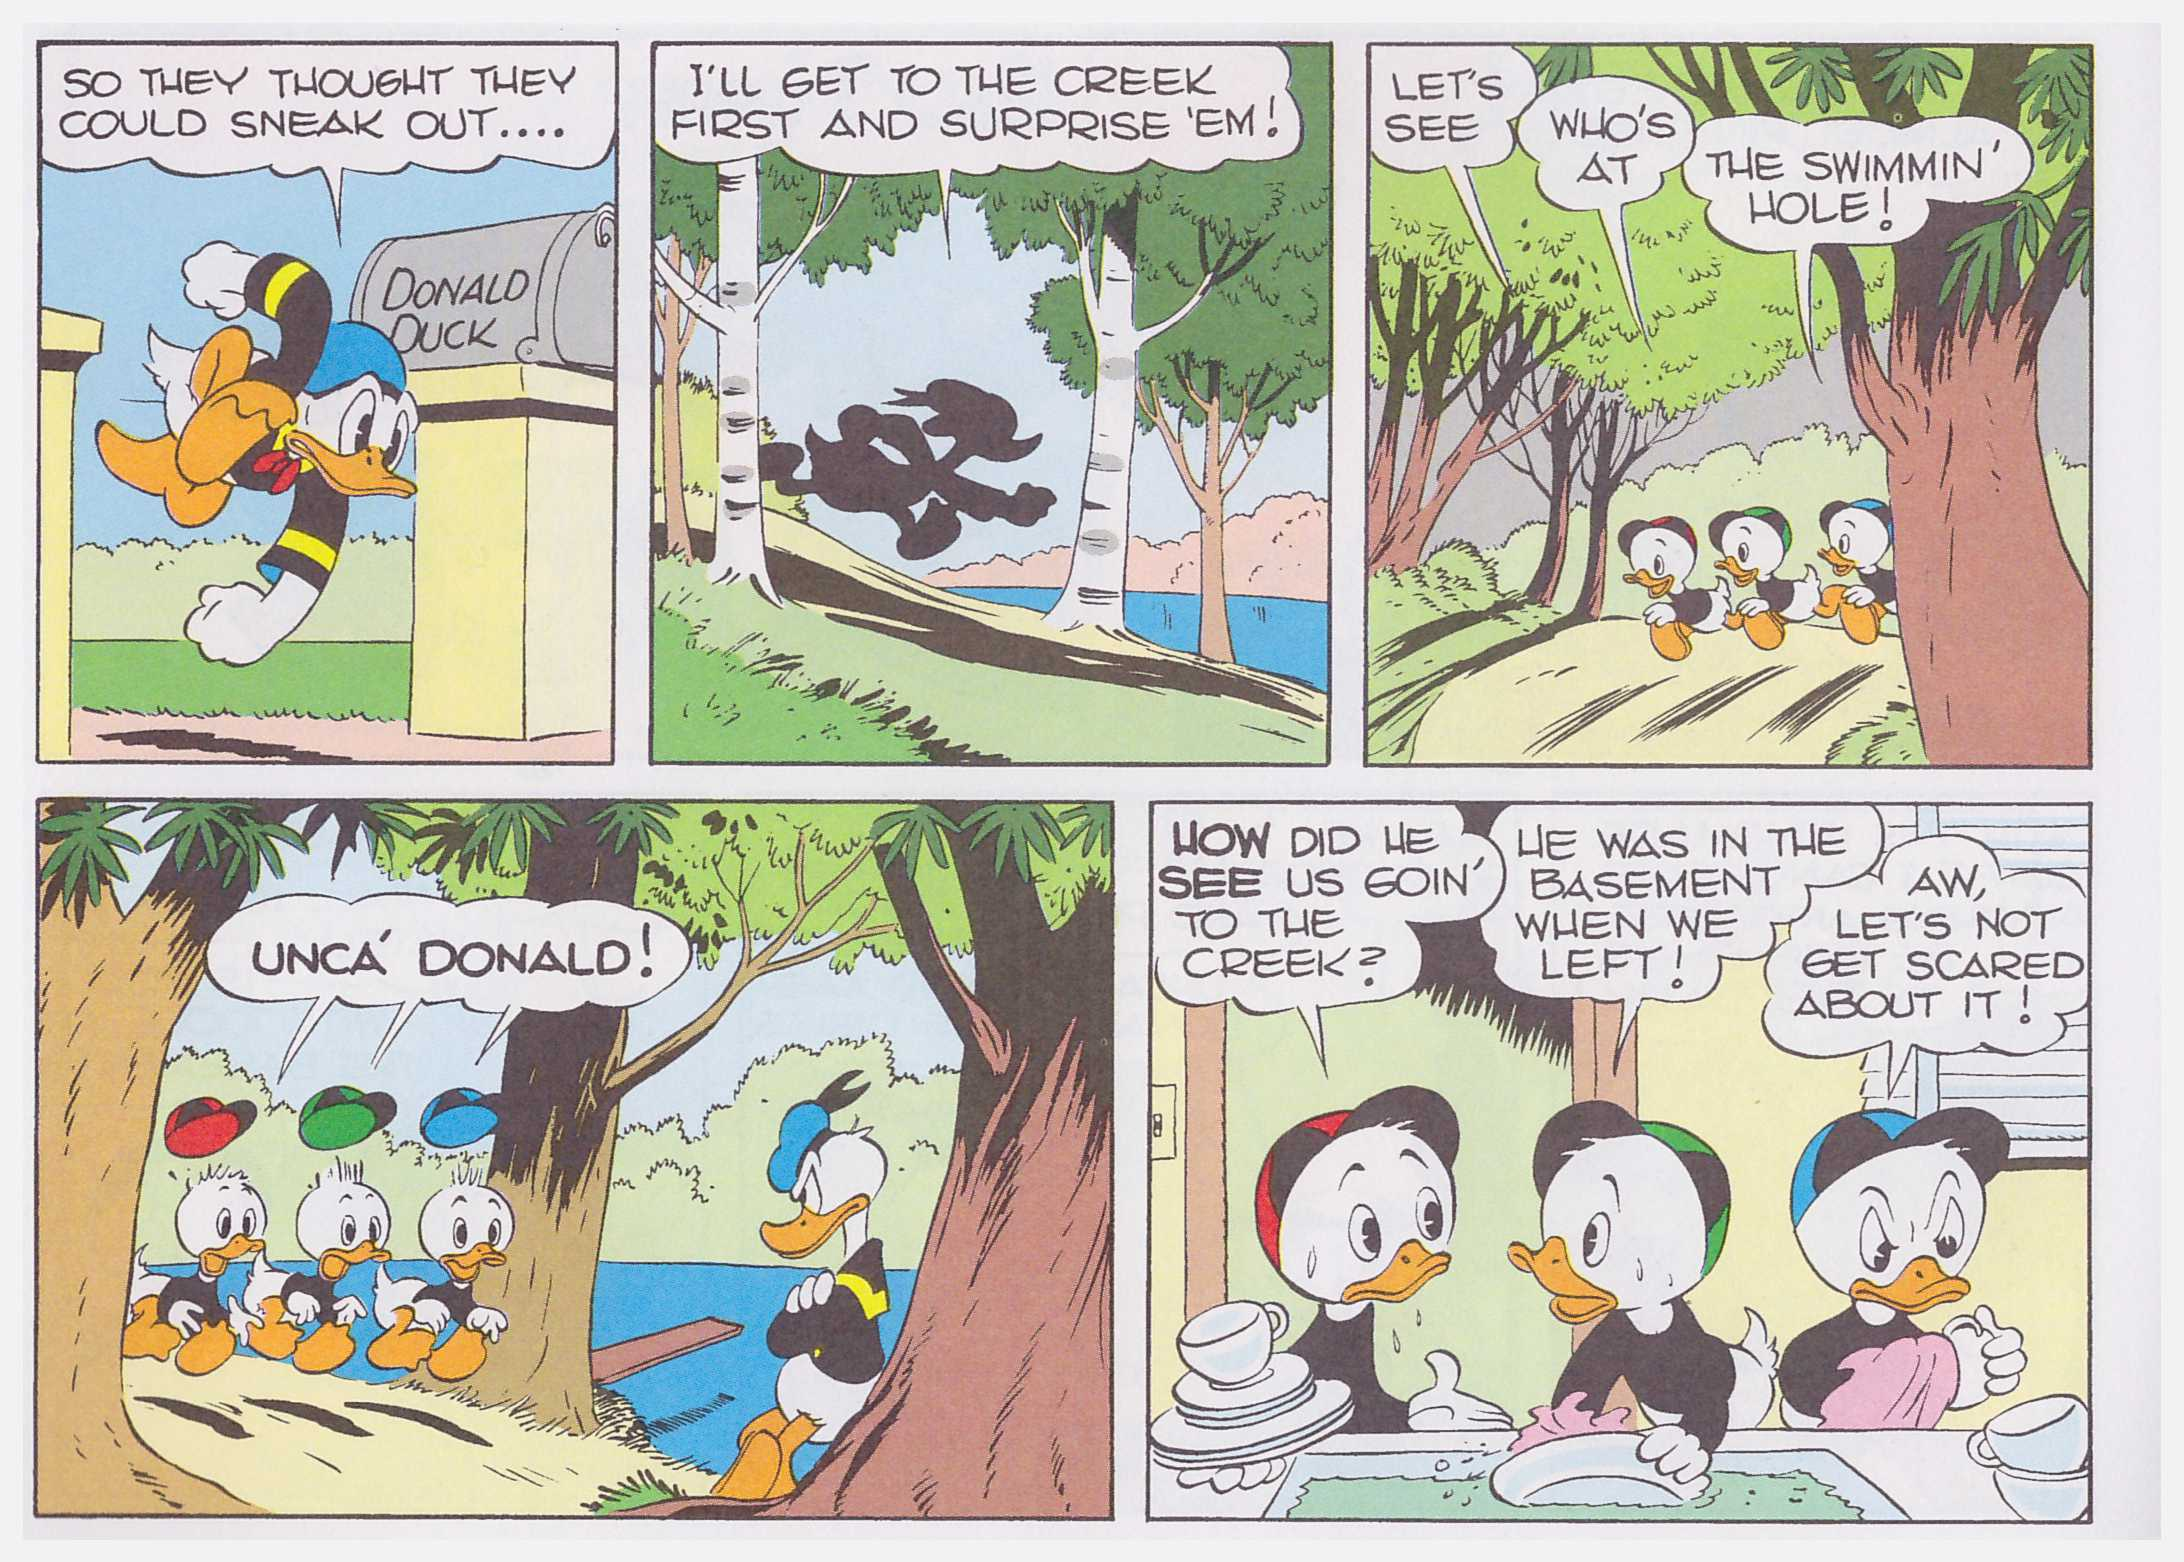 Walt Disney Comics and Stories by Carl Barks vol 6 review